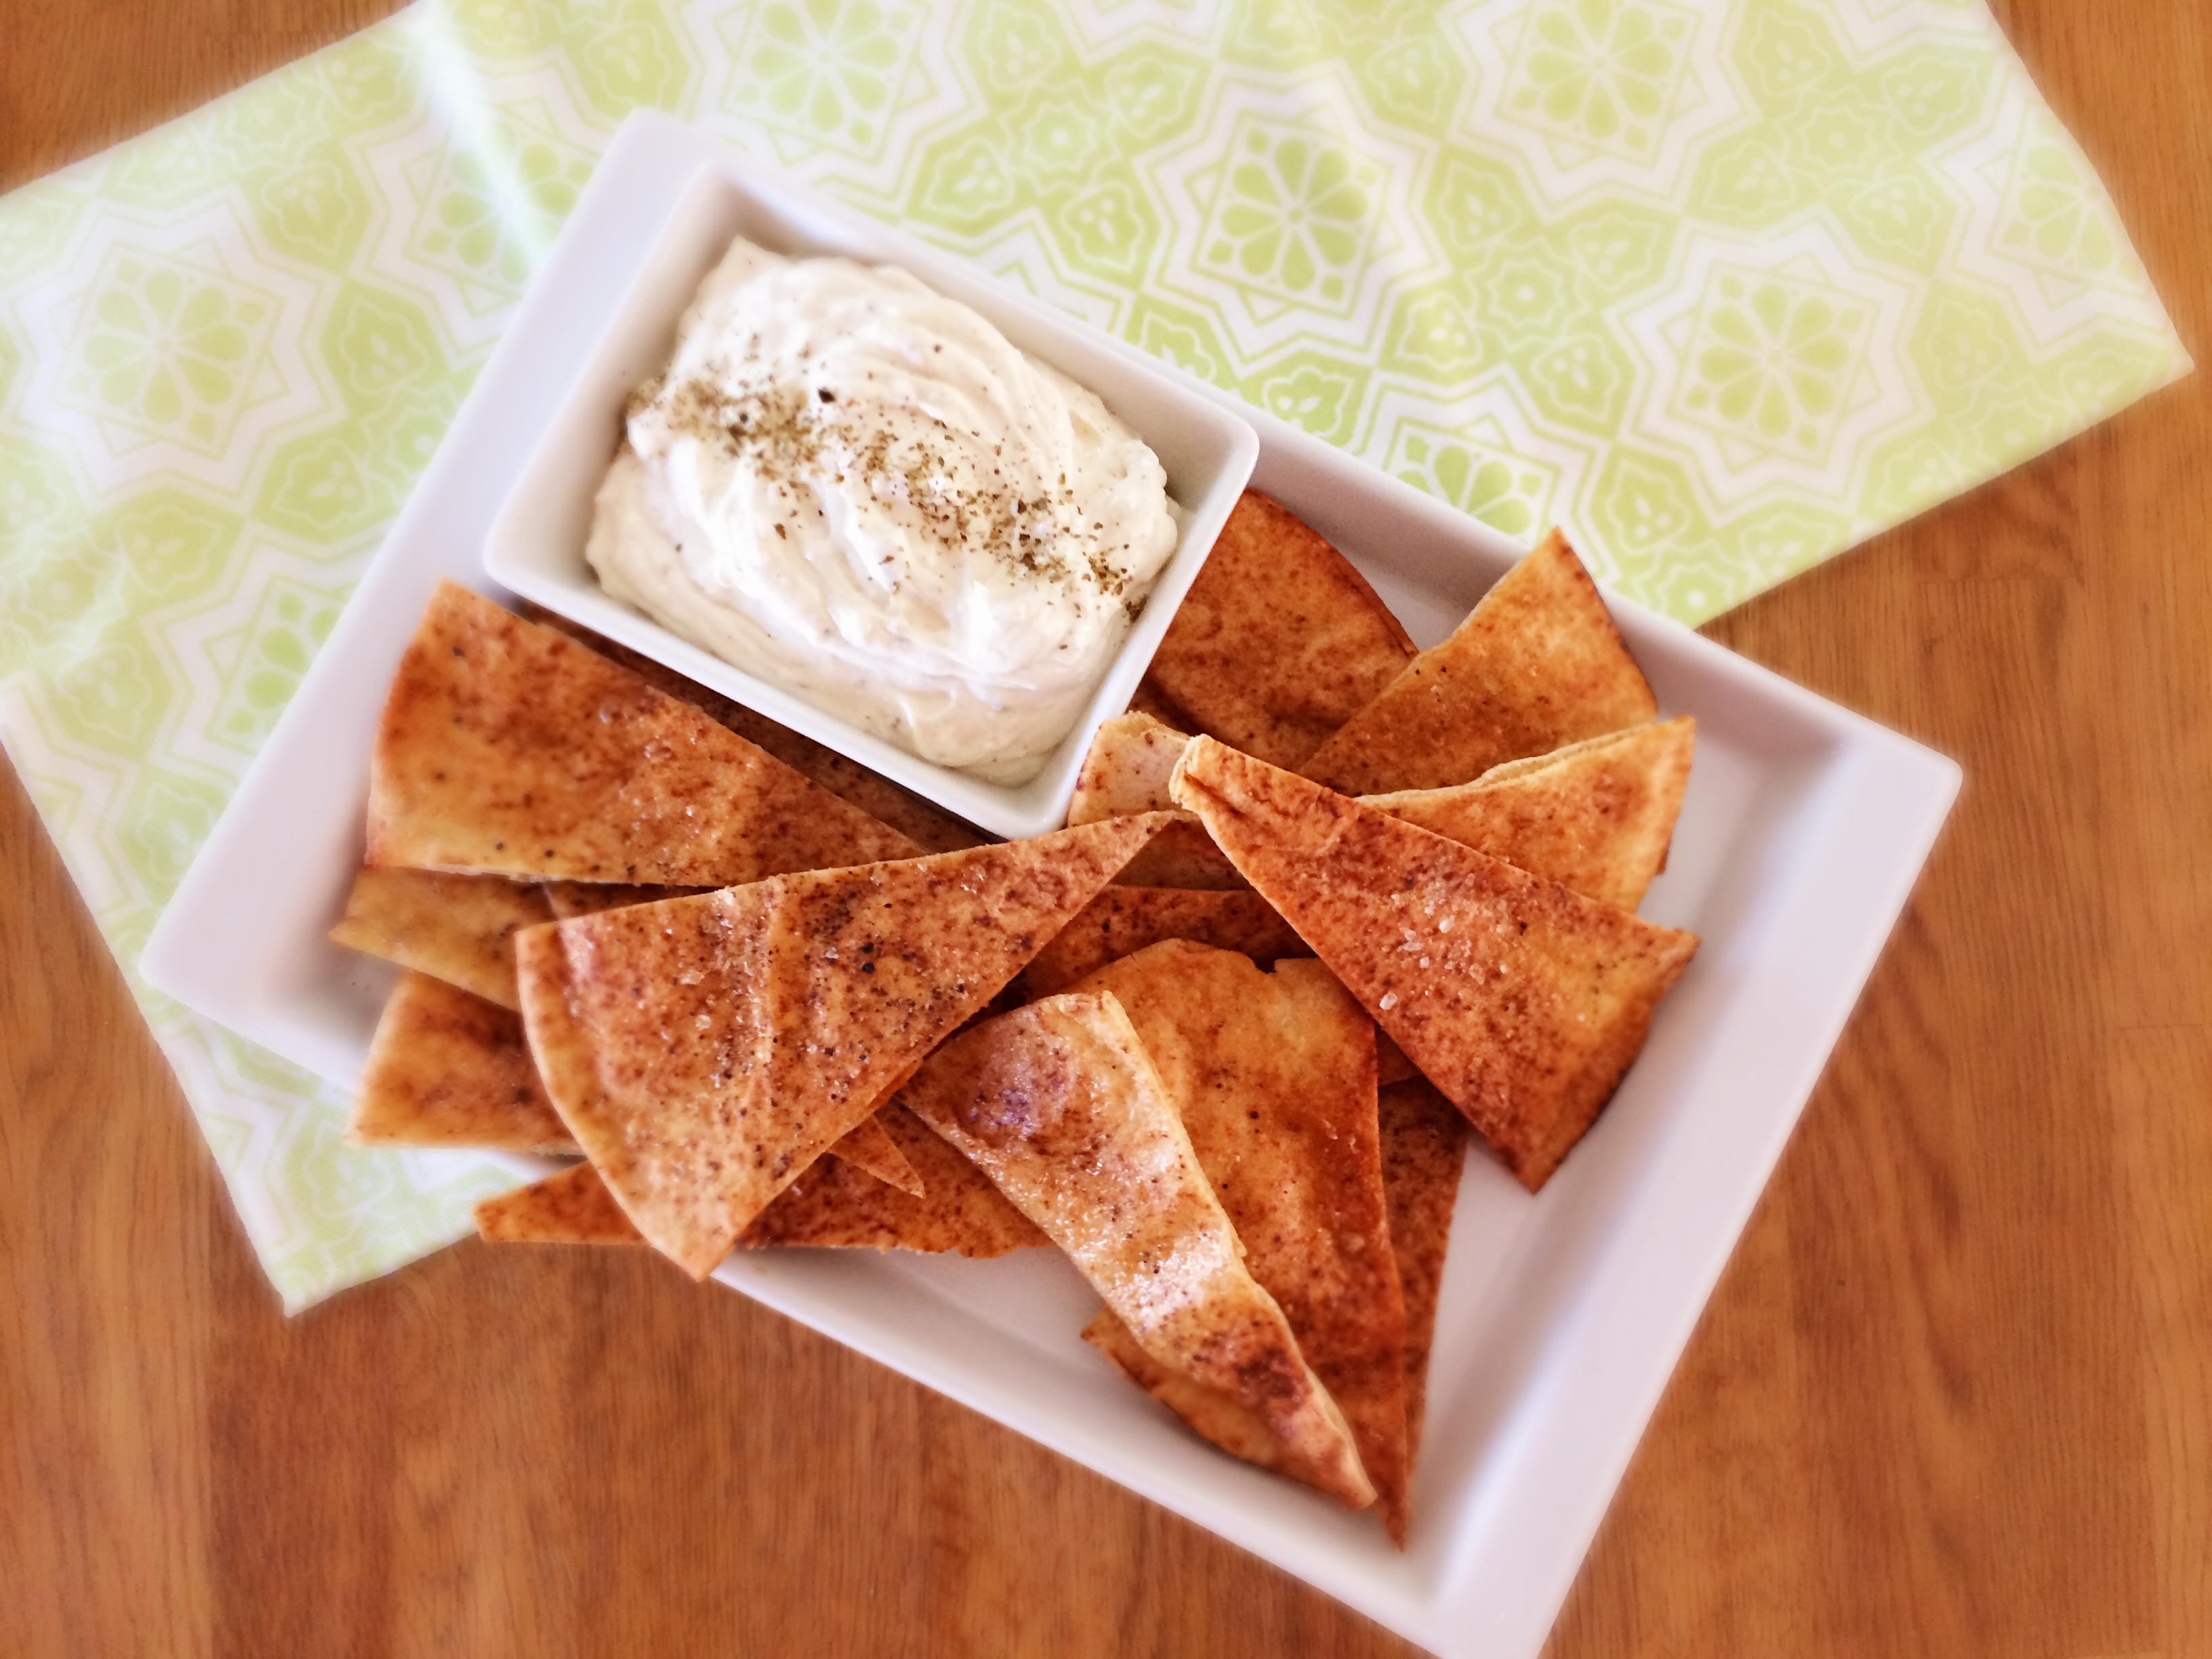 Lebanese Bread Garlic Chips with Whipped Feta Dip